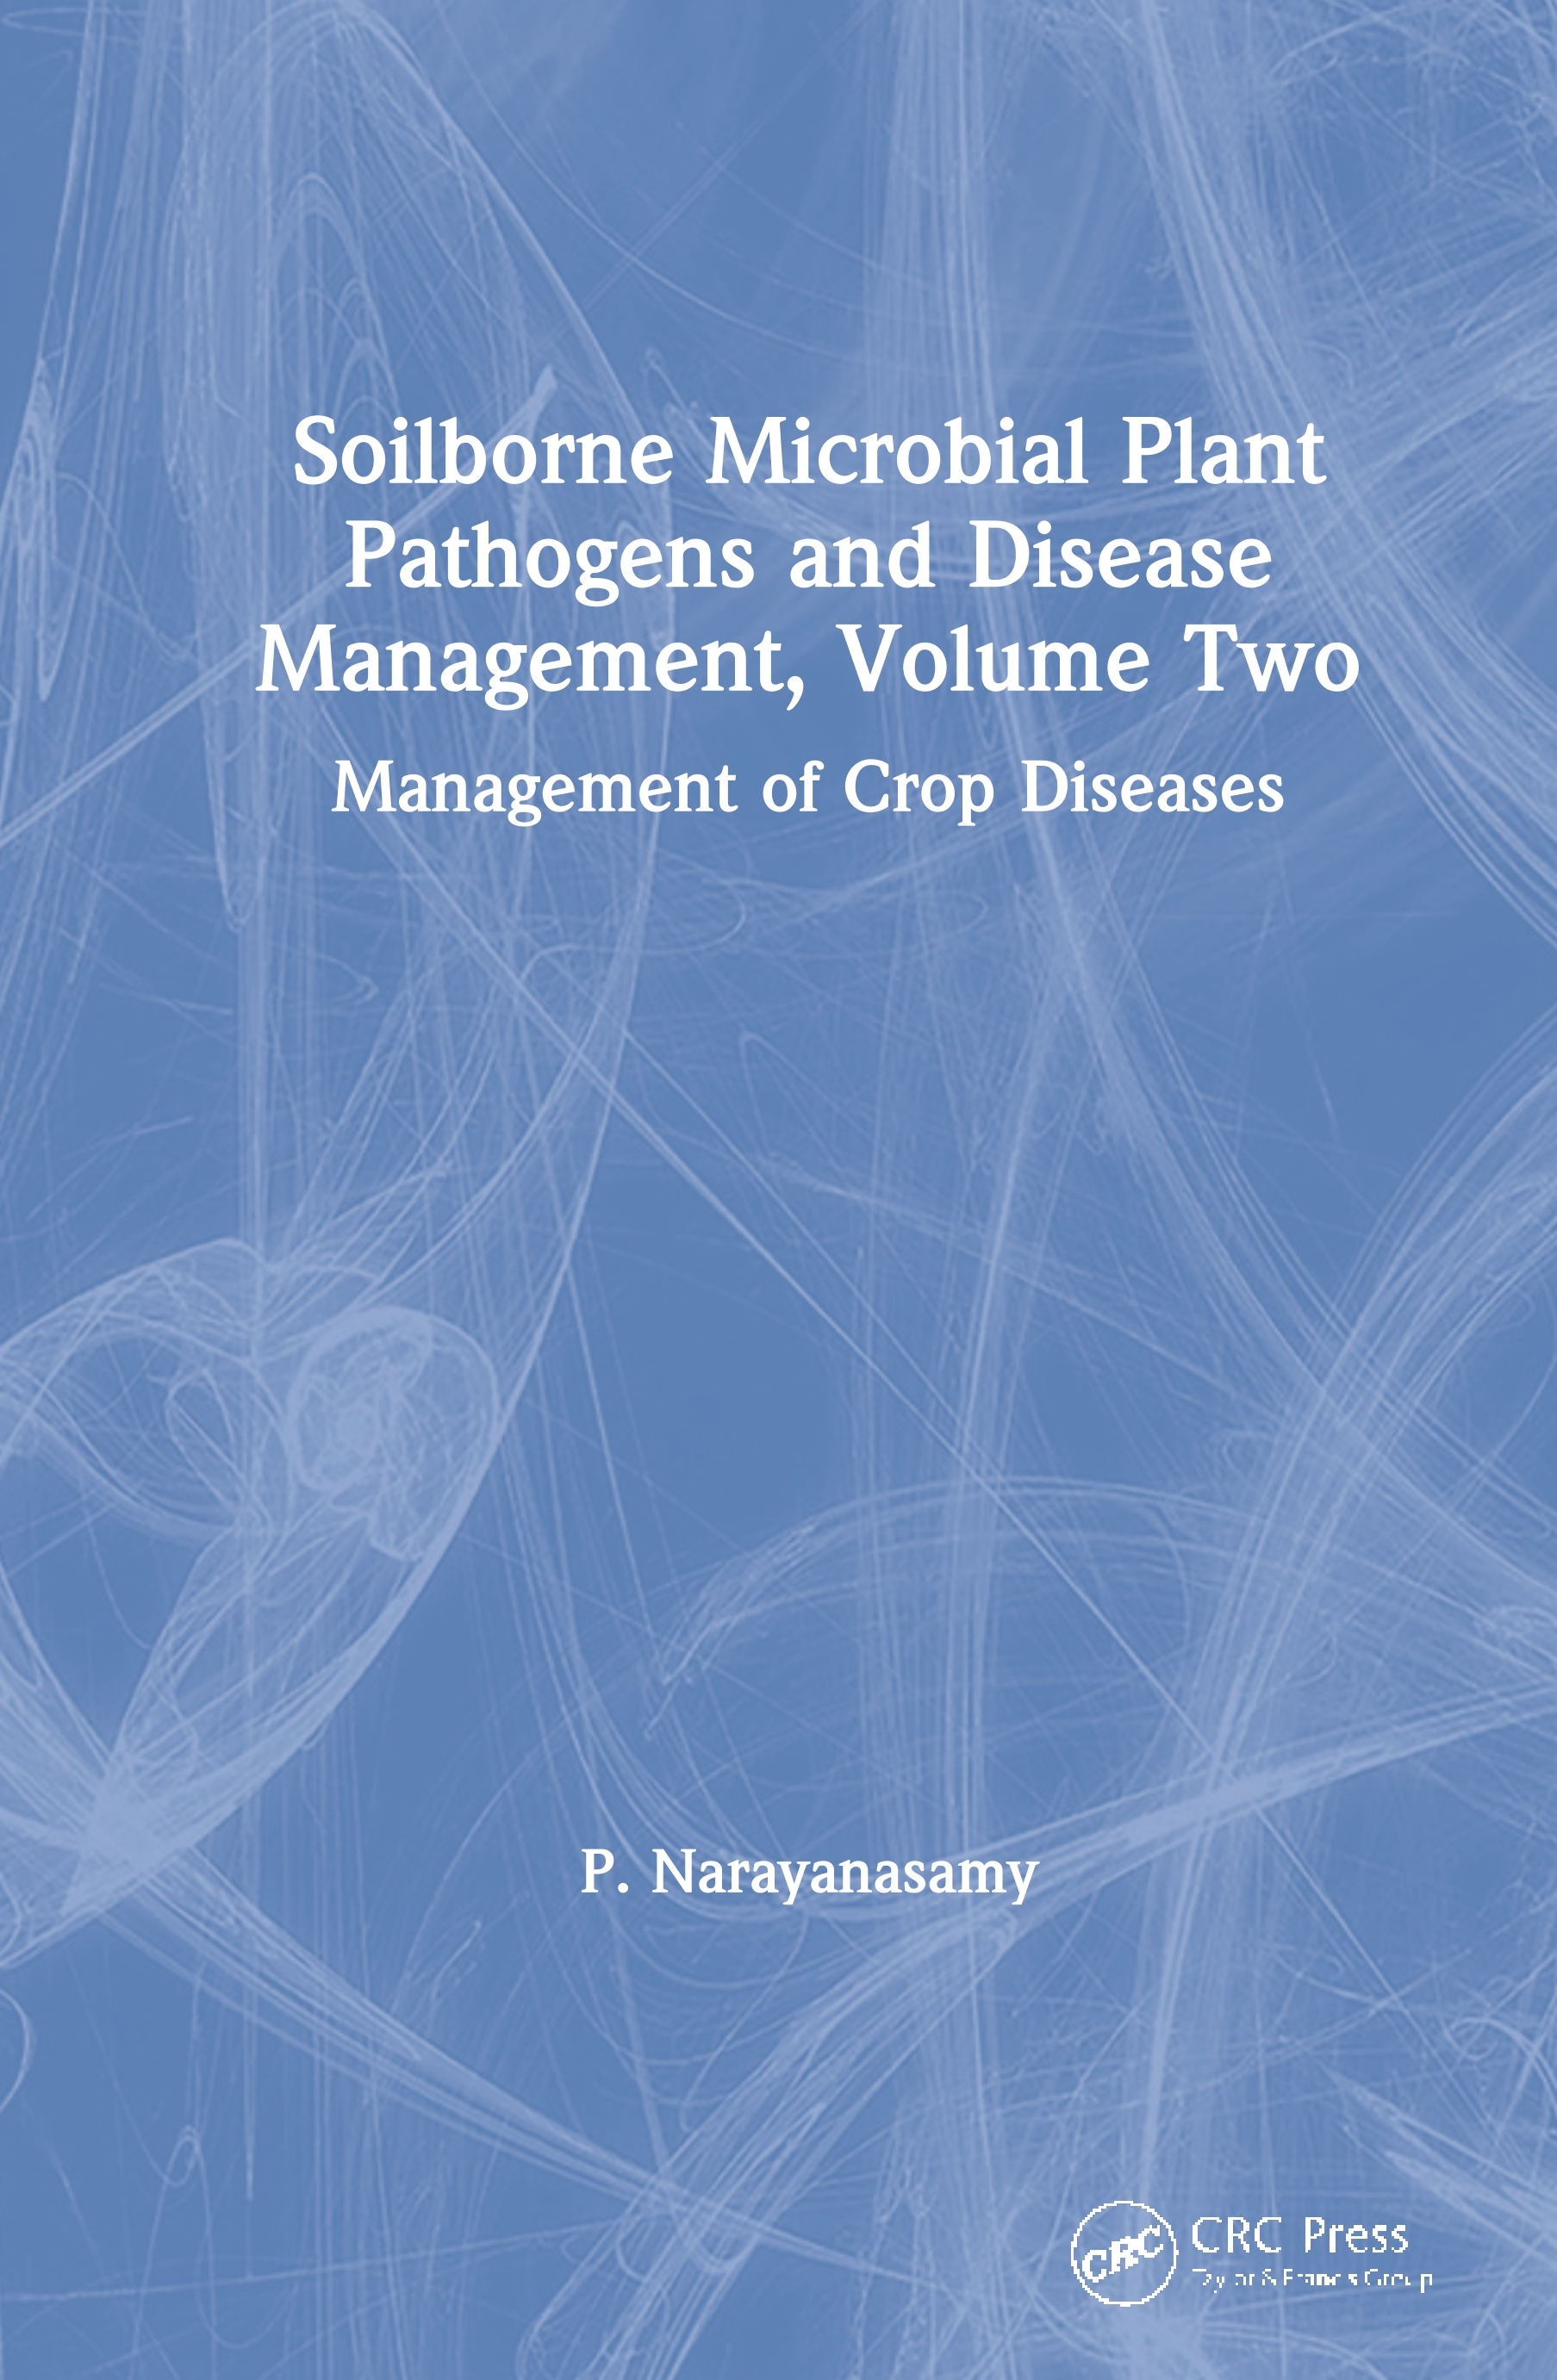 Soilborne Microbial Plant Pathogens and Disease Management, Volume Two: Management of Crop Diseases book cover